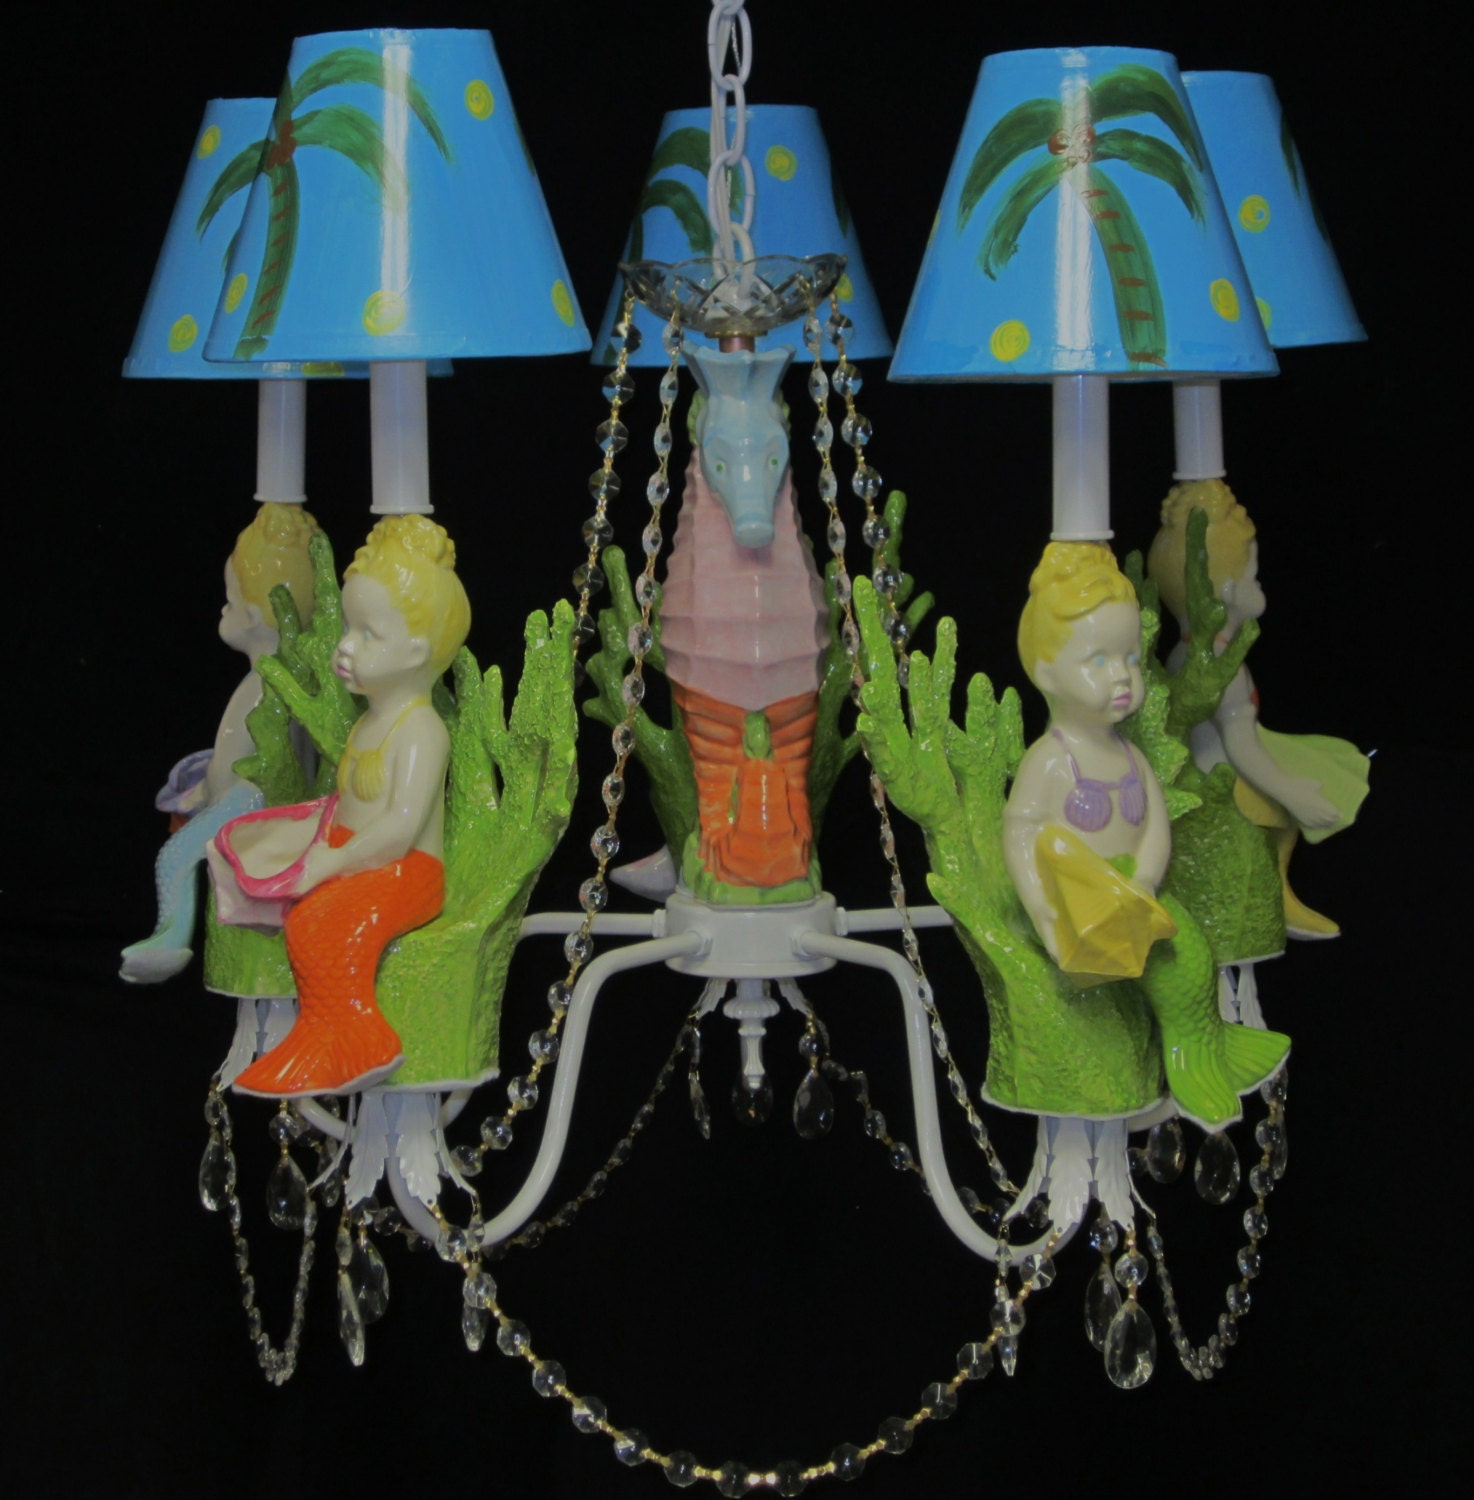 Mermaid chandelier girls room chandelier kids room lighting zoom arubaitofo Choice Image